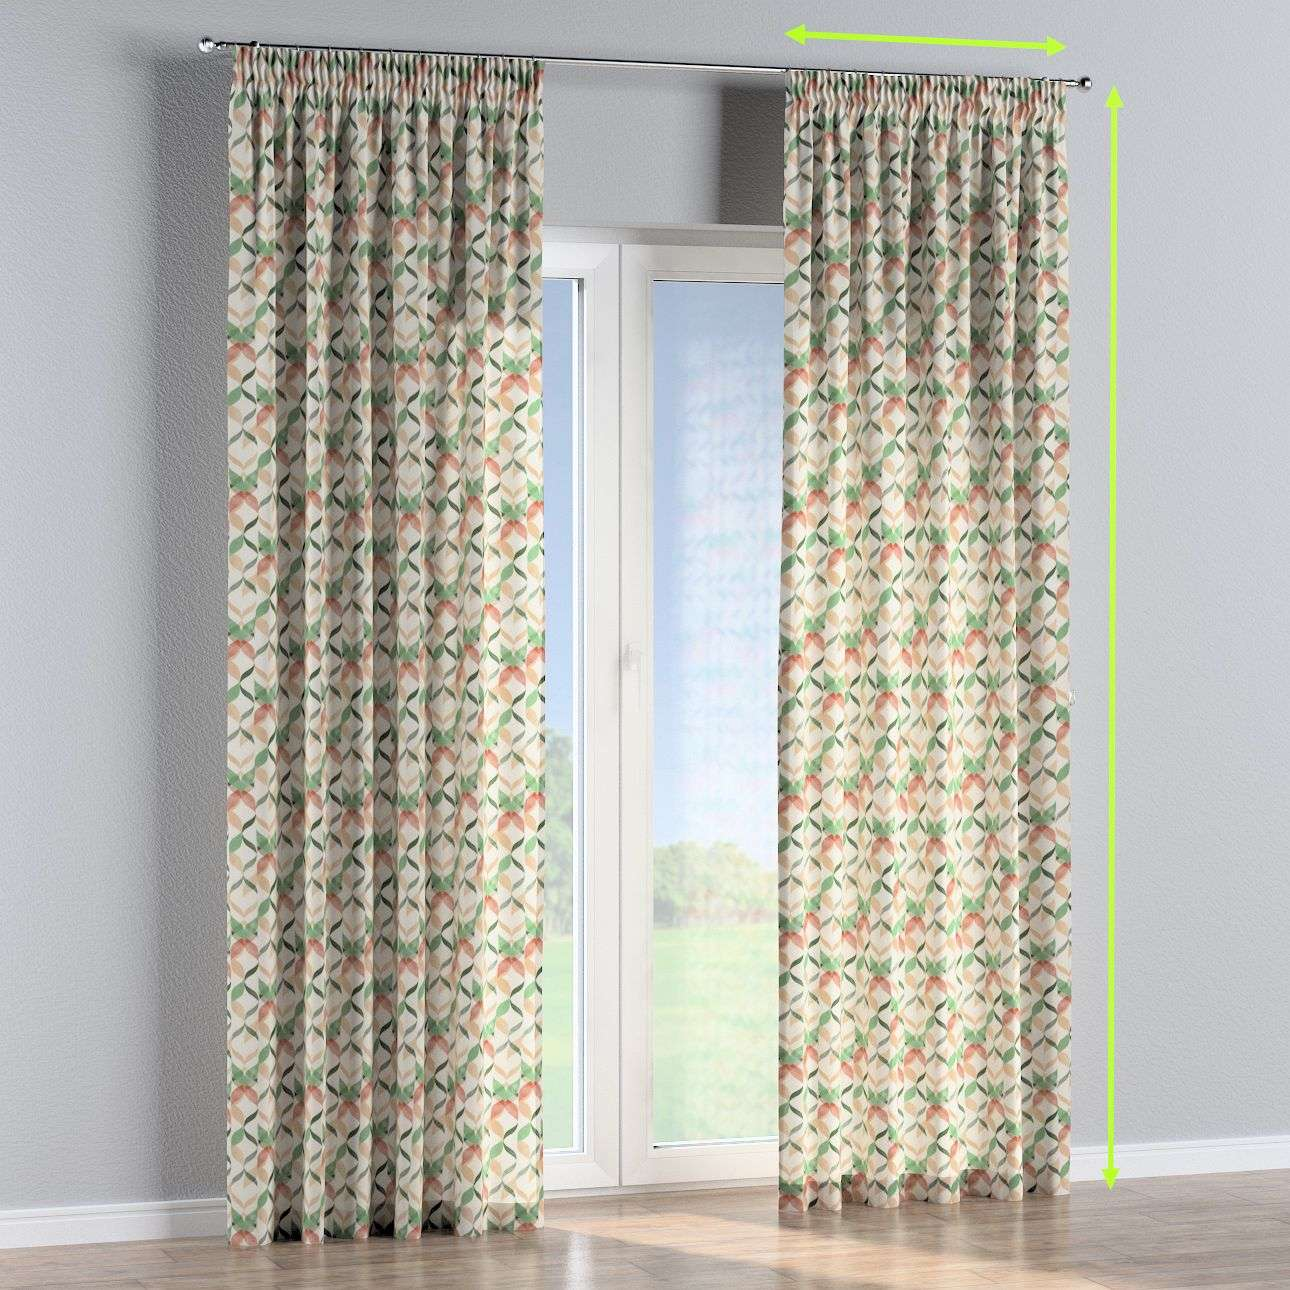 Pencil pleat curtains in collection Urban Jungle, fabric: 141-64